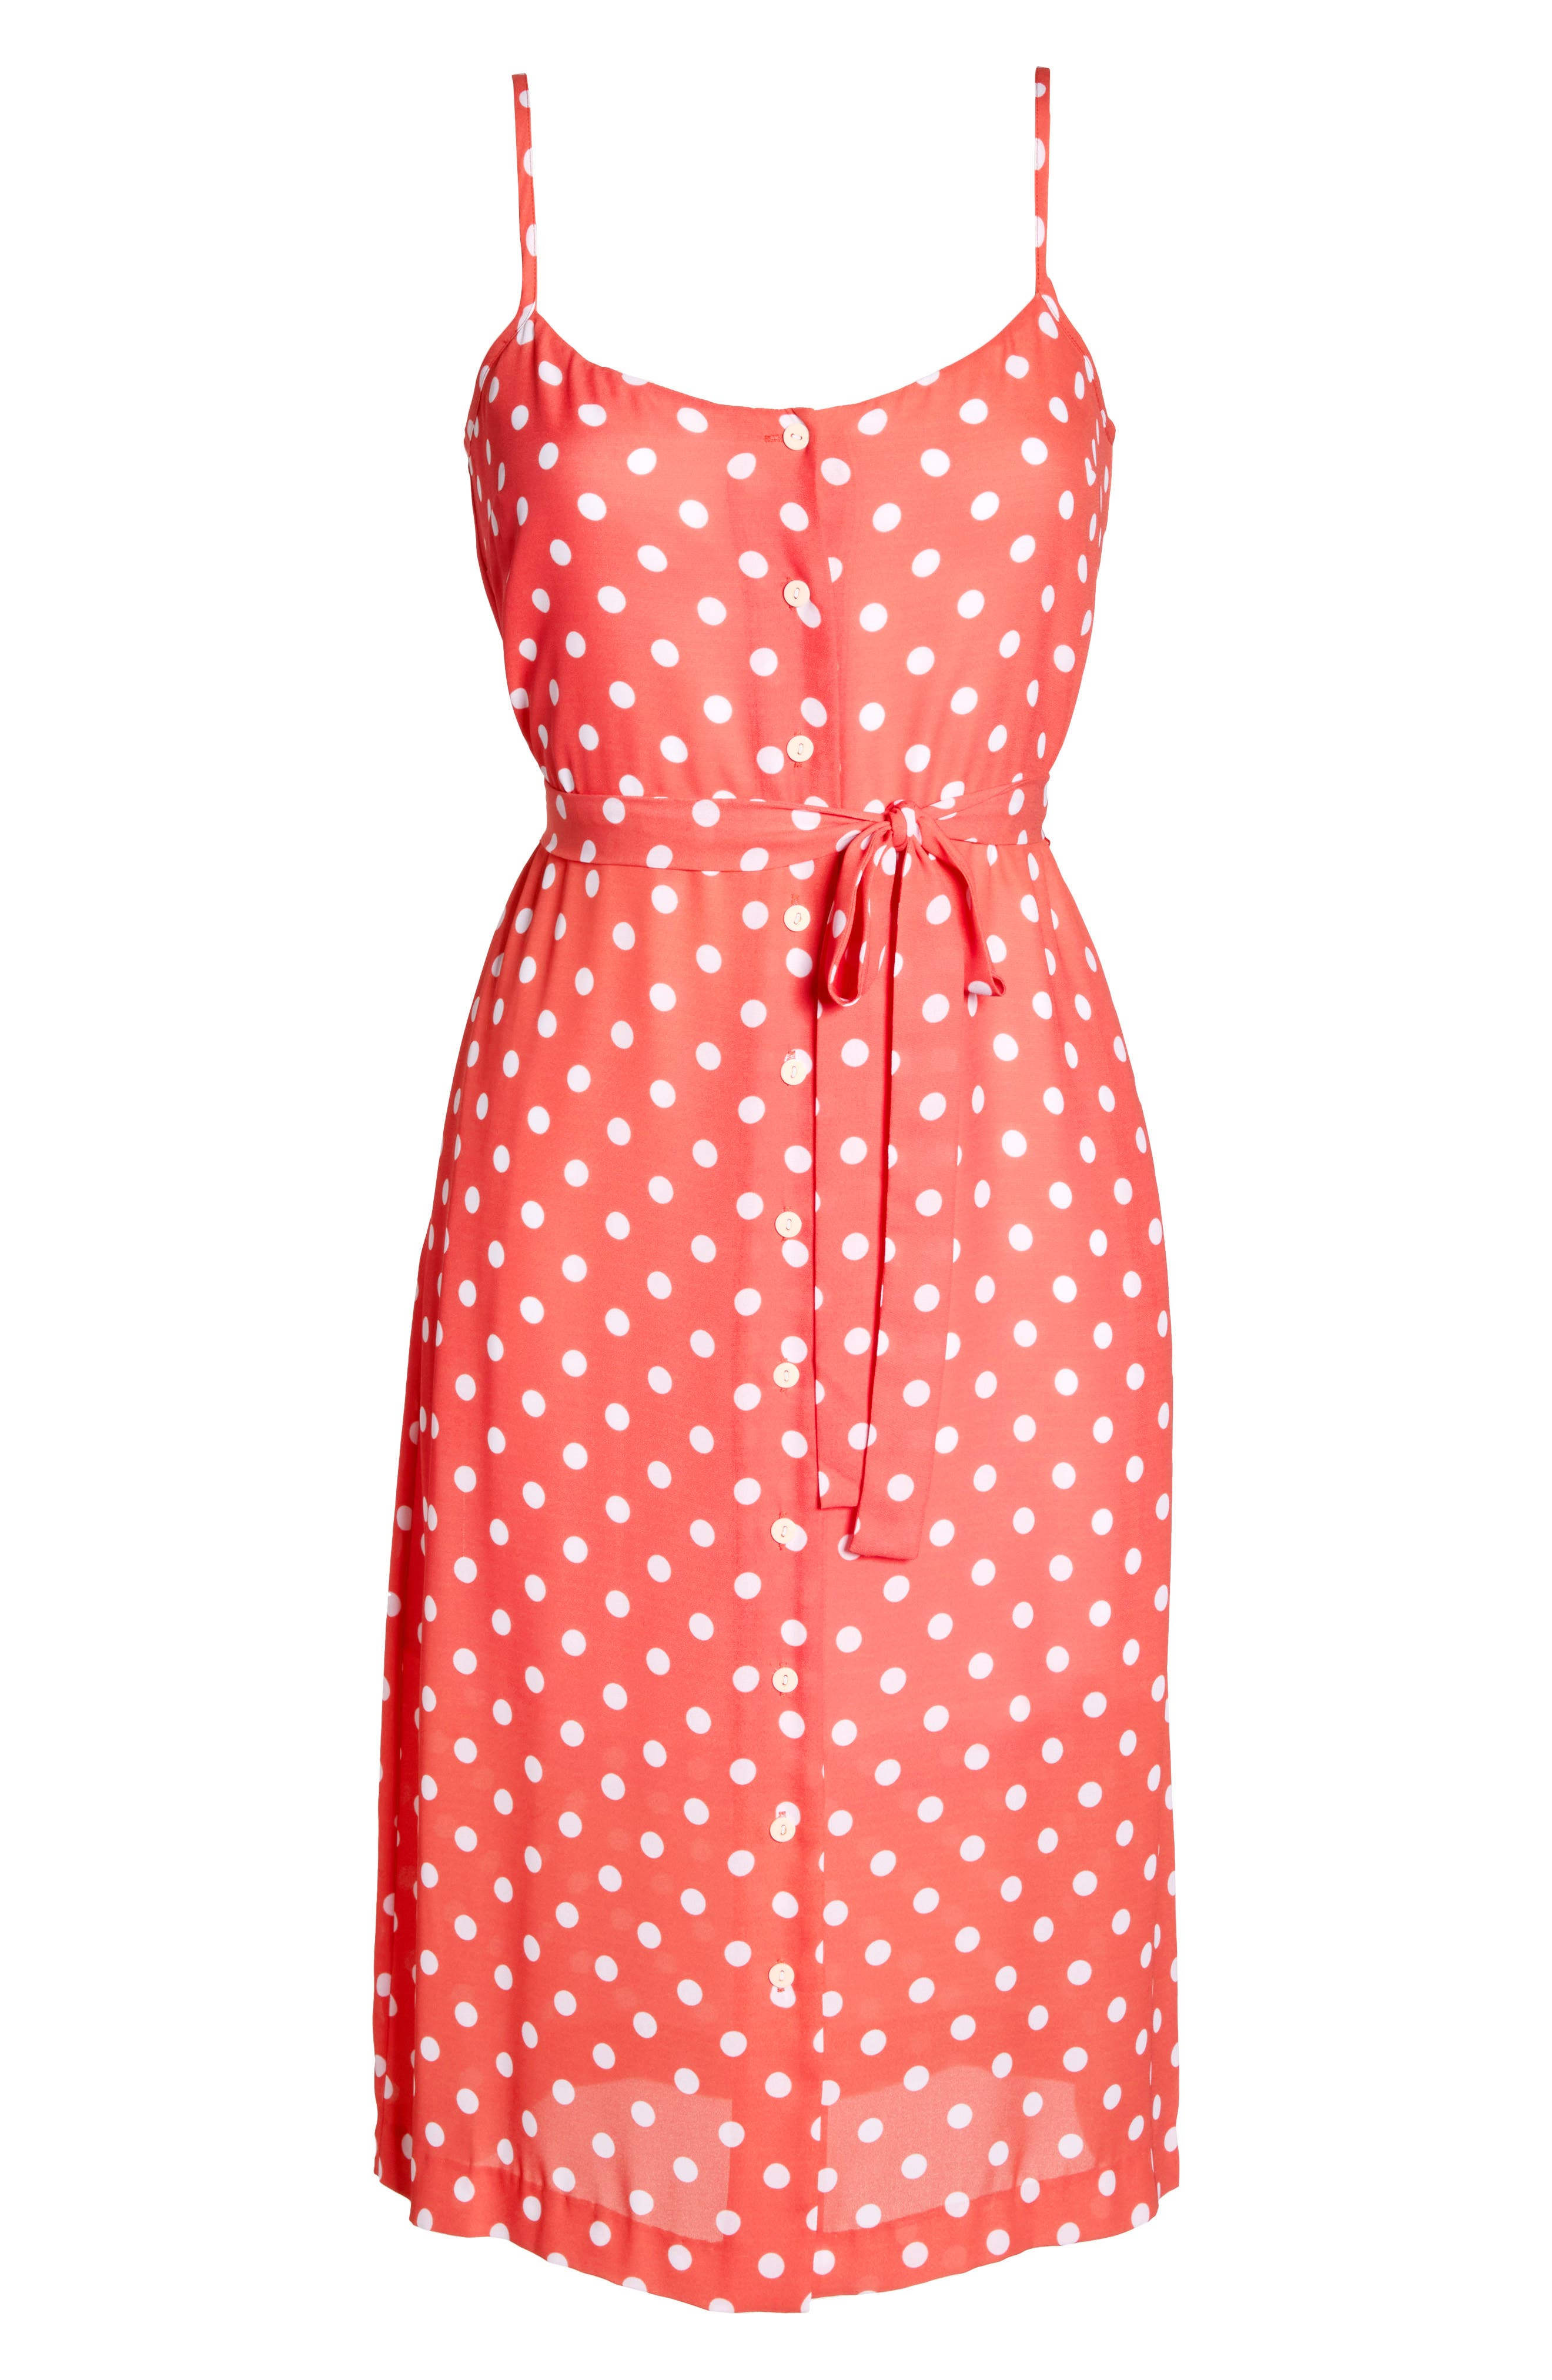 Flower Frolicking Midi Dress,                             Alternate thumbnail 6, color,                             Coral Polka Dot